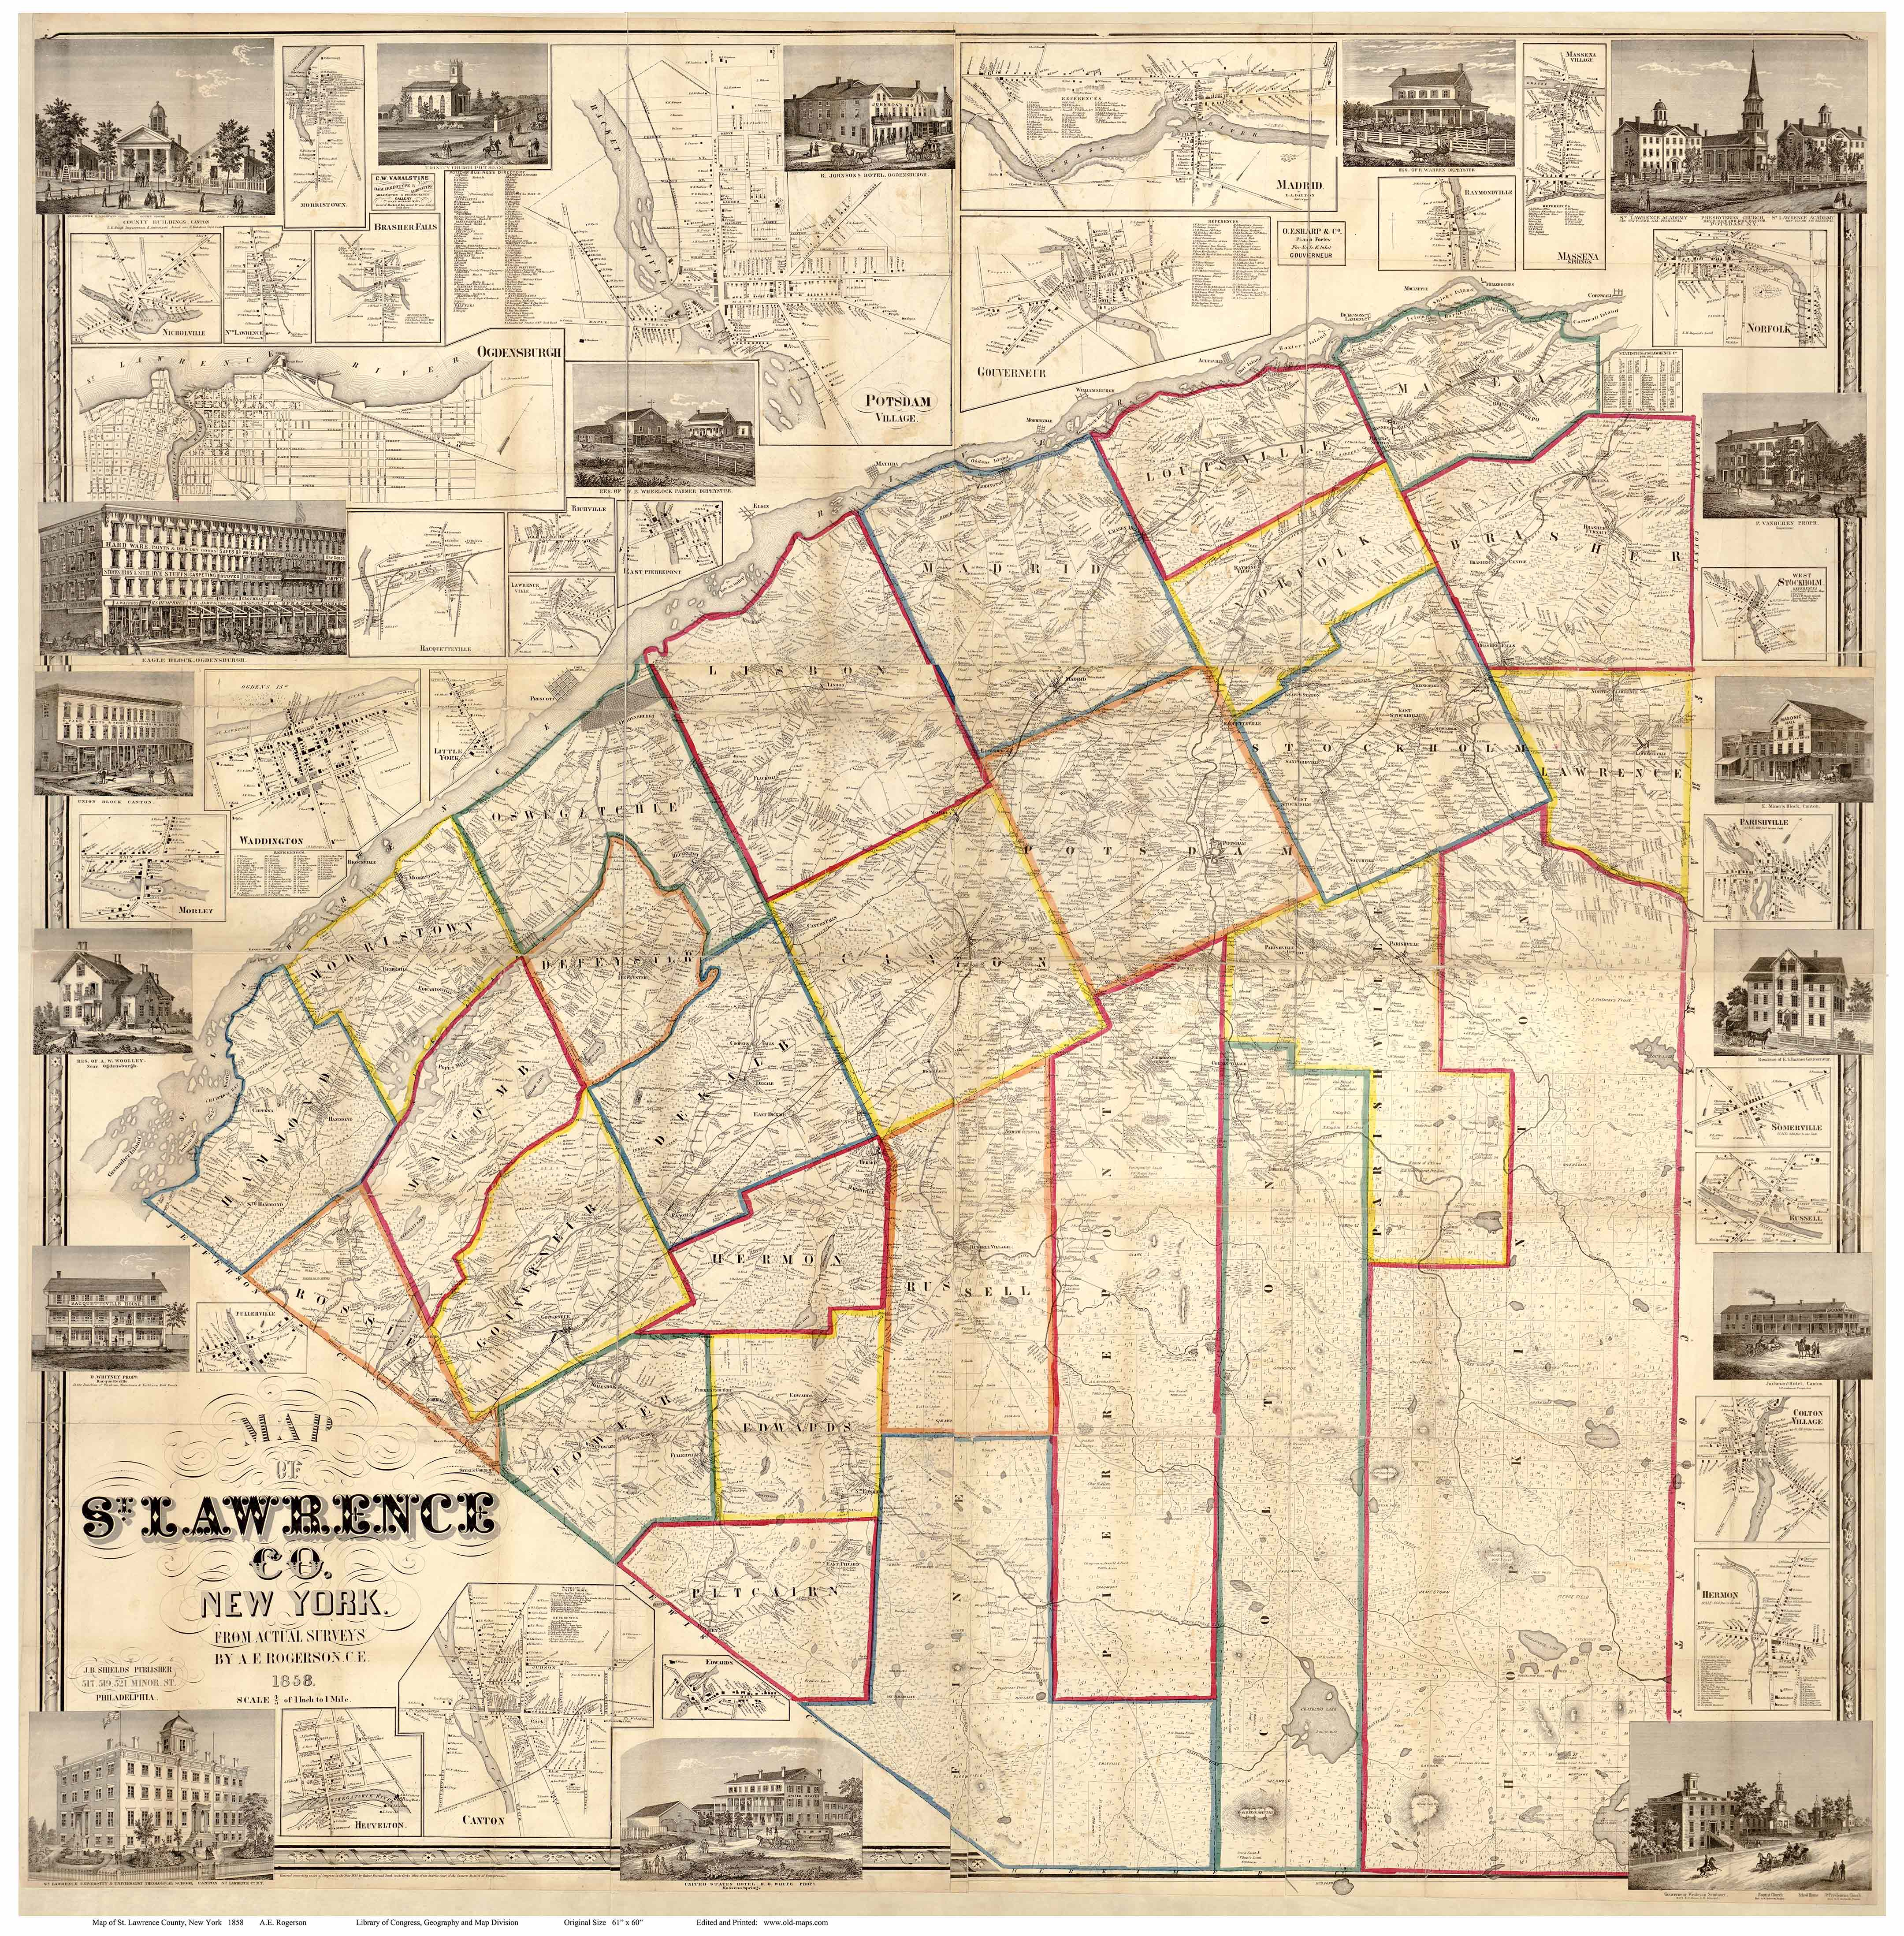 Map of st lawrence county ny 1858 map of st lawrence co ny 1858 publicscrutiny Choice Image